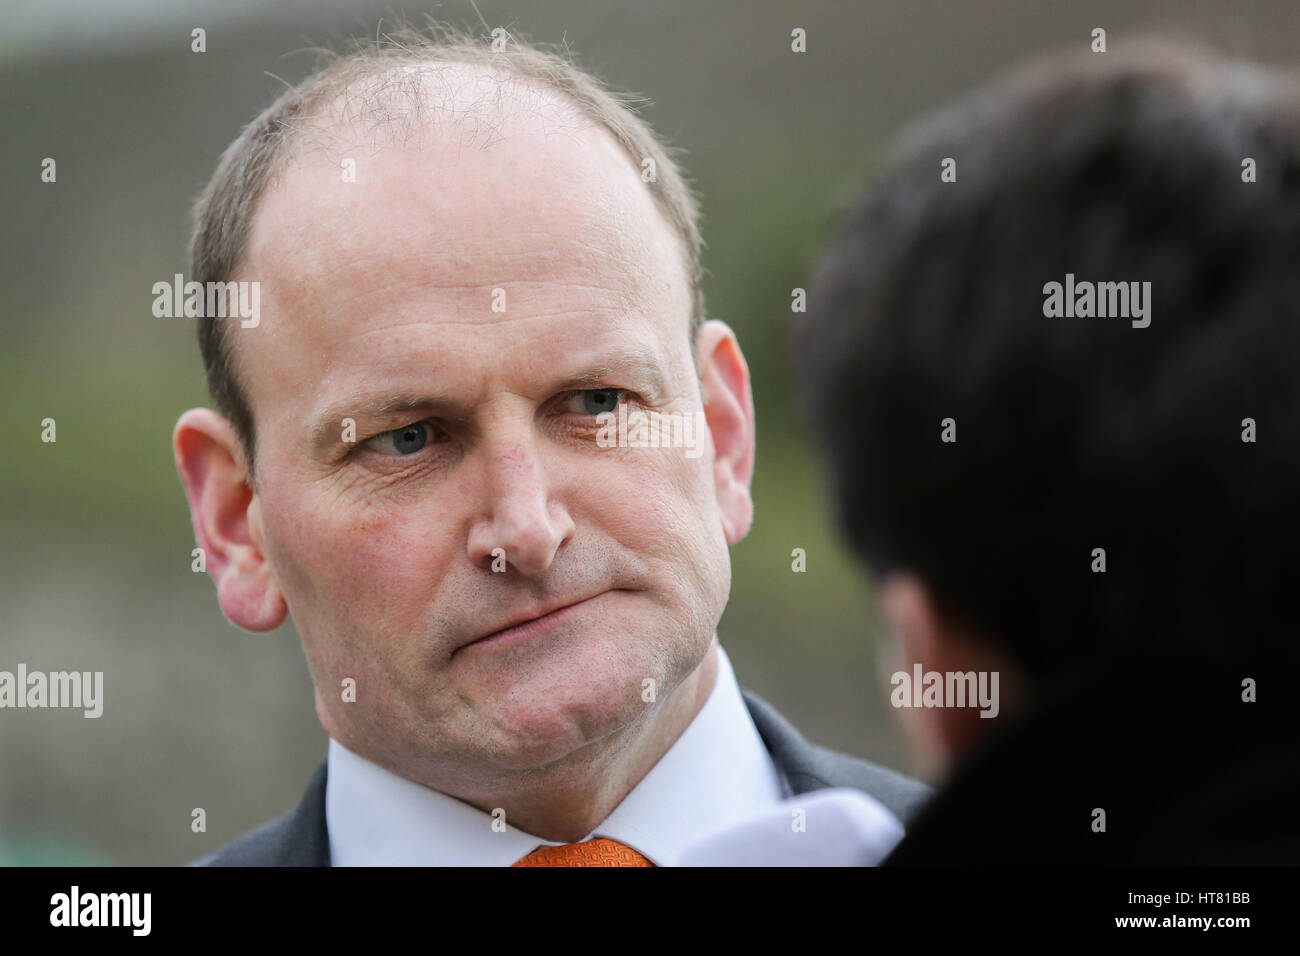 College Green, London, UK 8 Mar 2017 - Douglas Carswell MP on College Green giving media interviews on Budget Day. - Stock Image